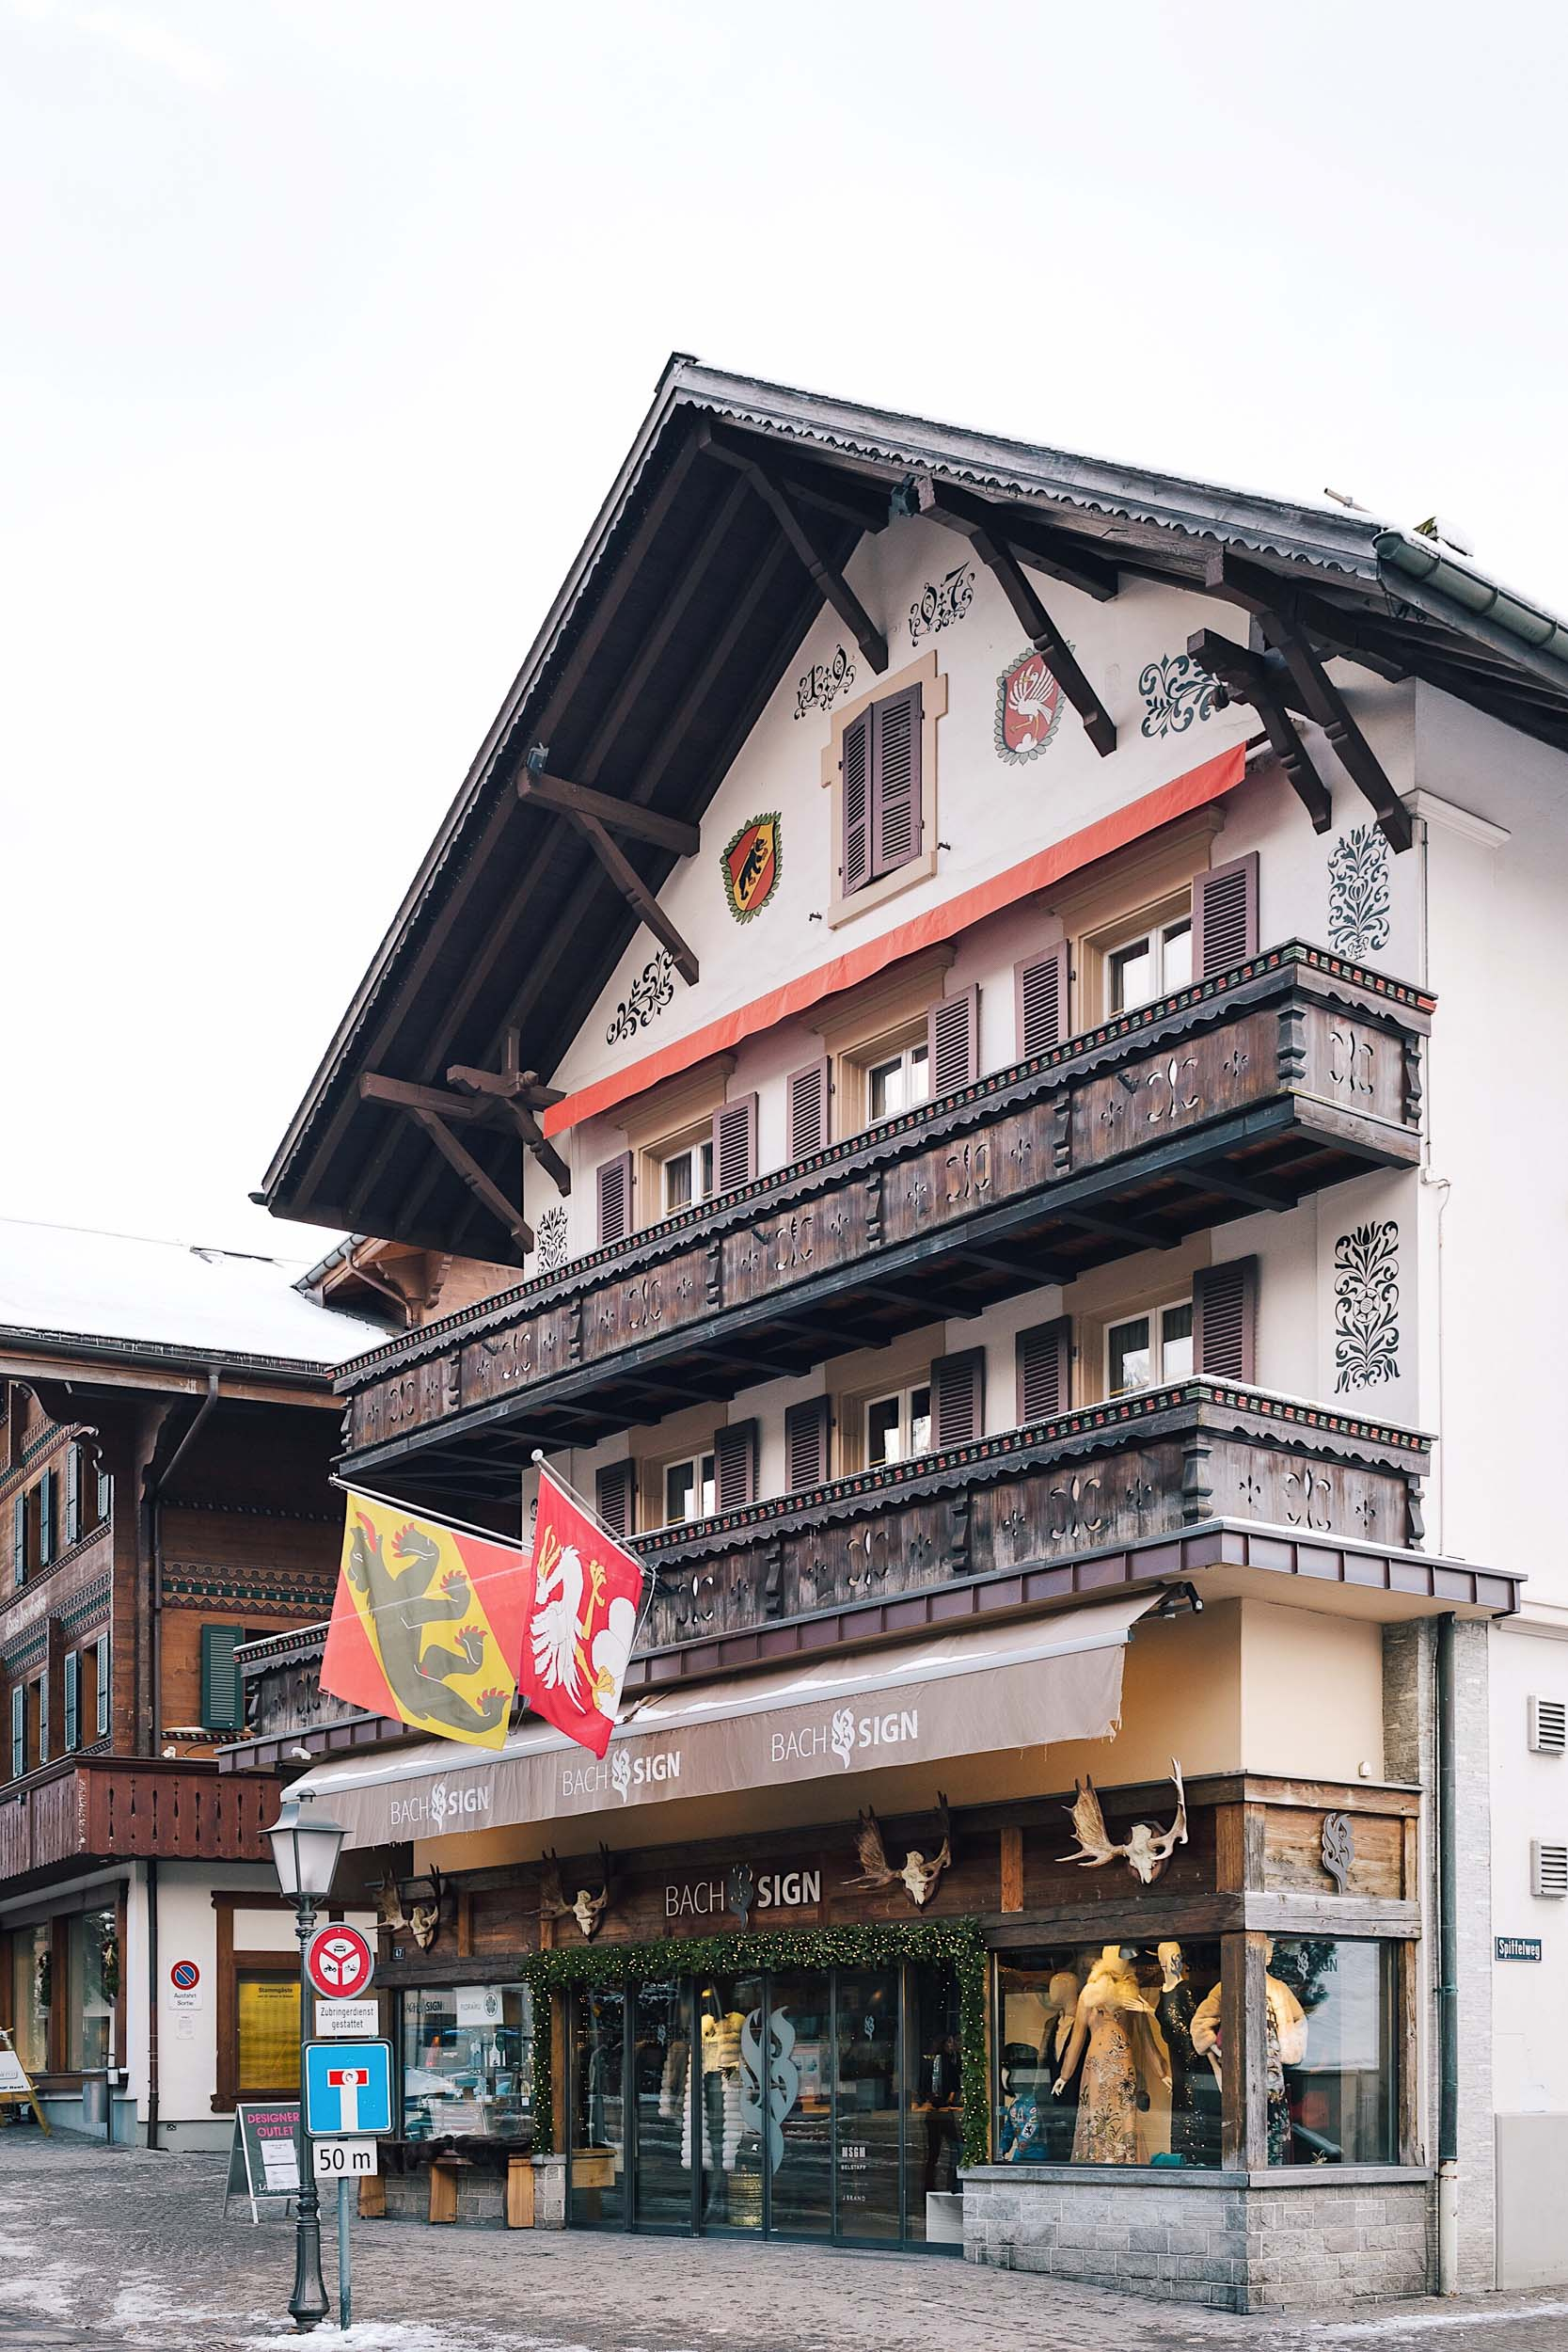 Gstaad, Switzerland is a popular destination for many, including a handful of famous celebrities like Julie Andrews, Salma Hayek, Valentino, and Elizabeth Taylor.